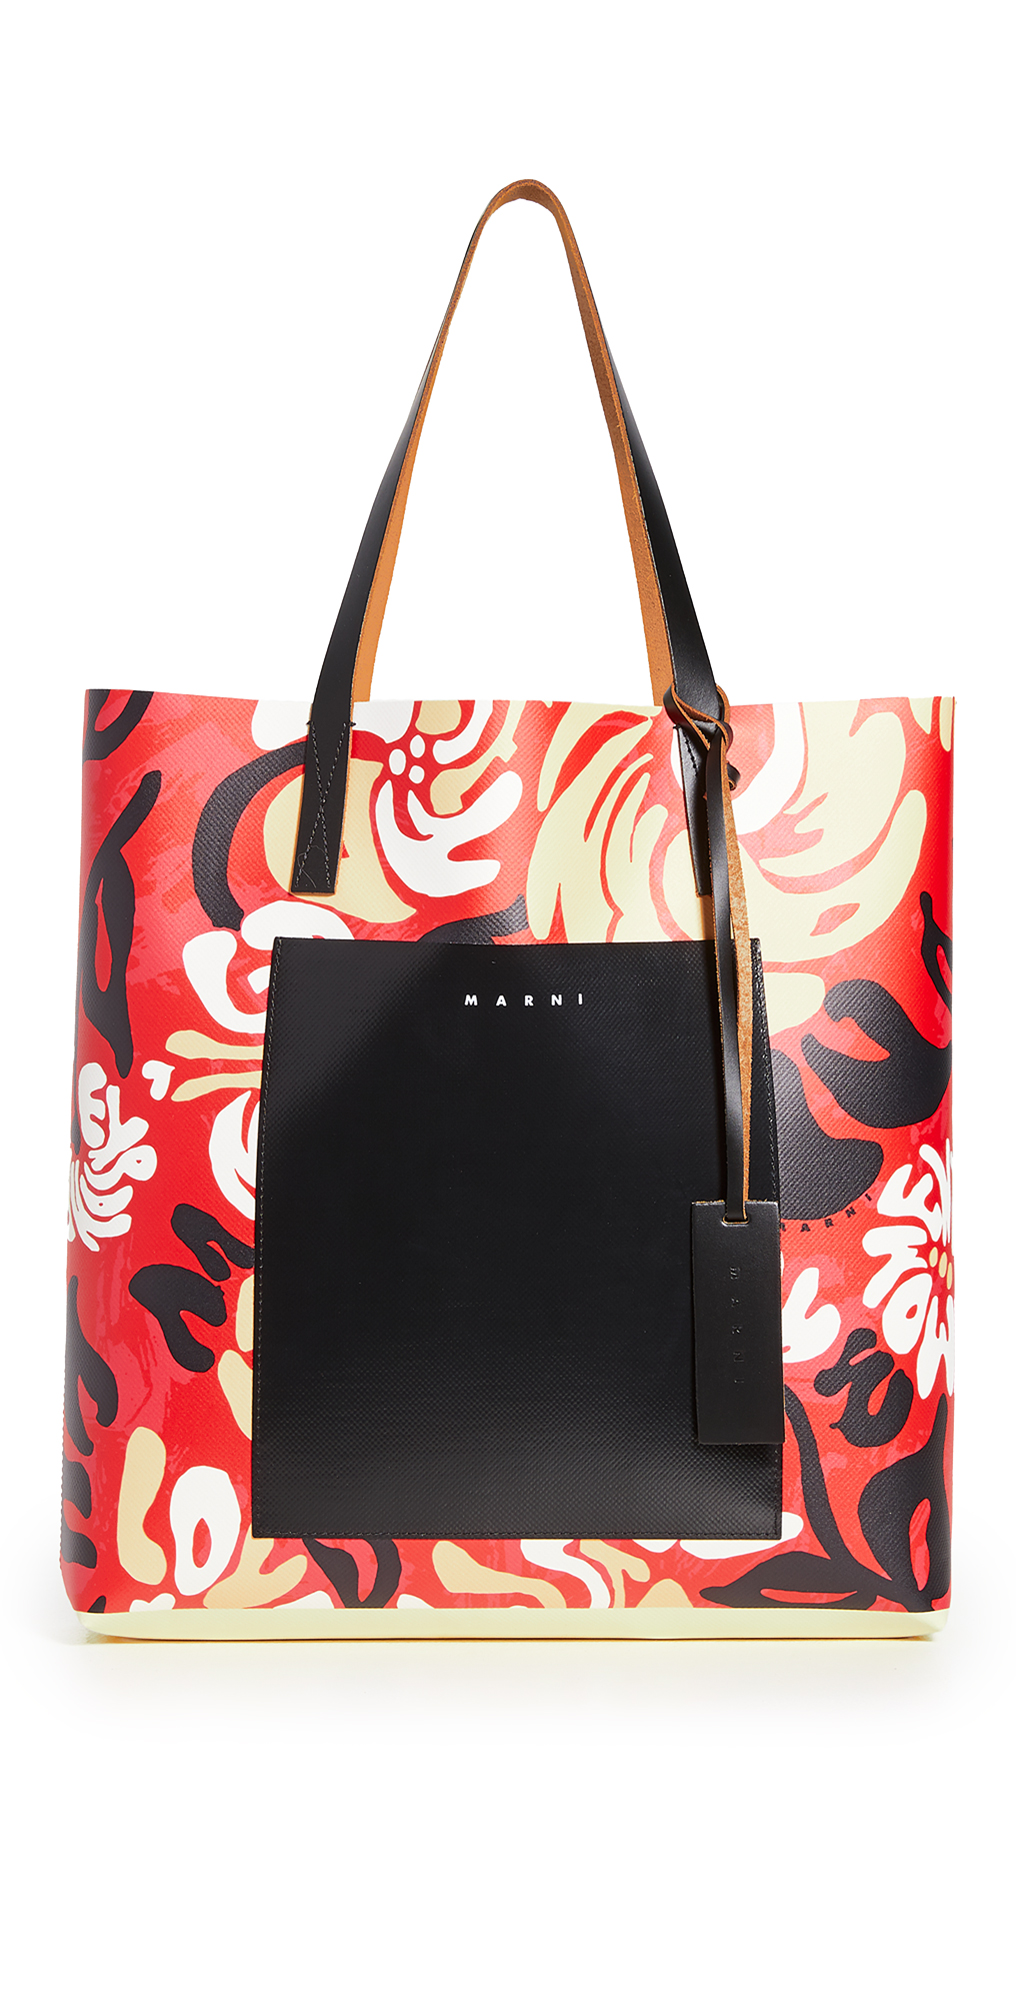 Marni Museo Soft Small Tote